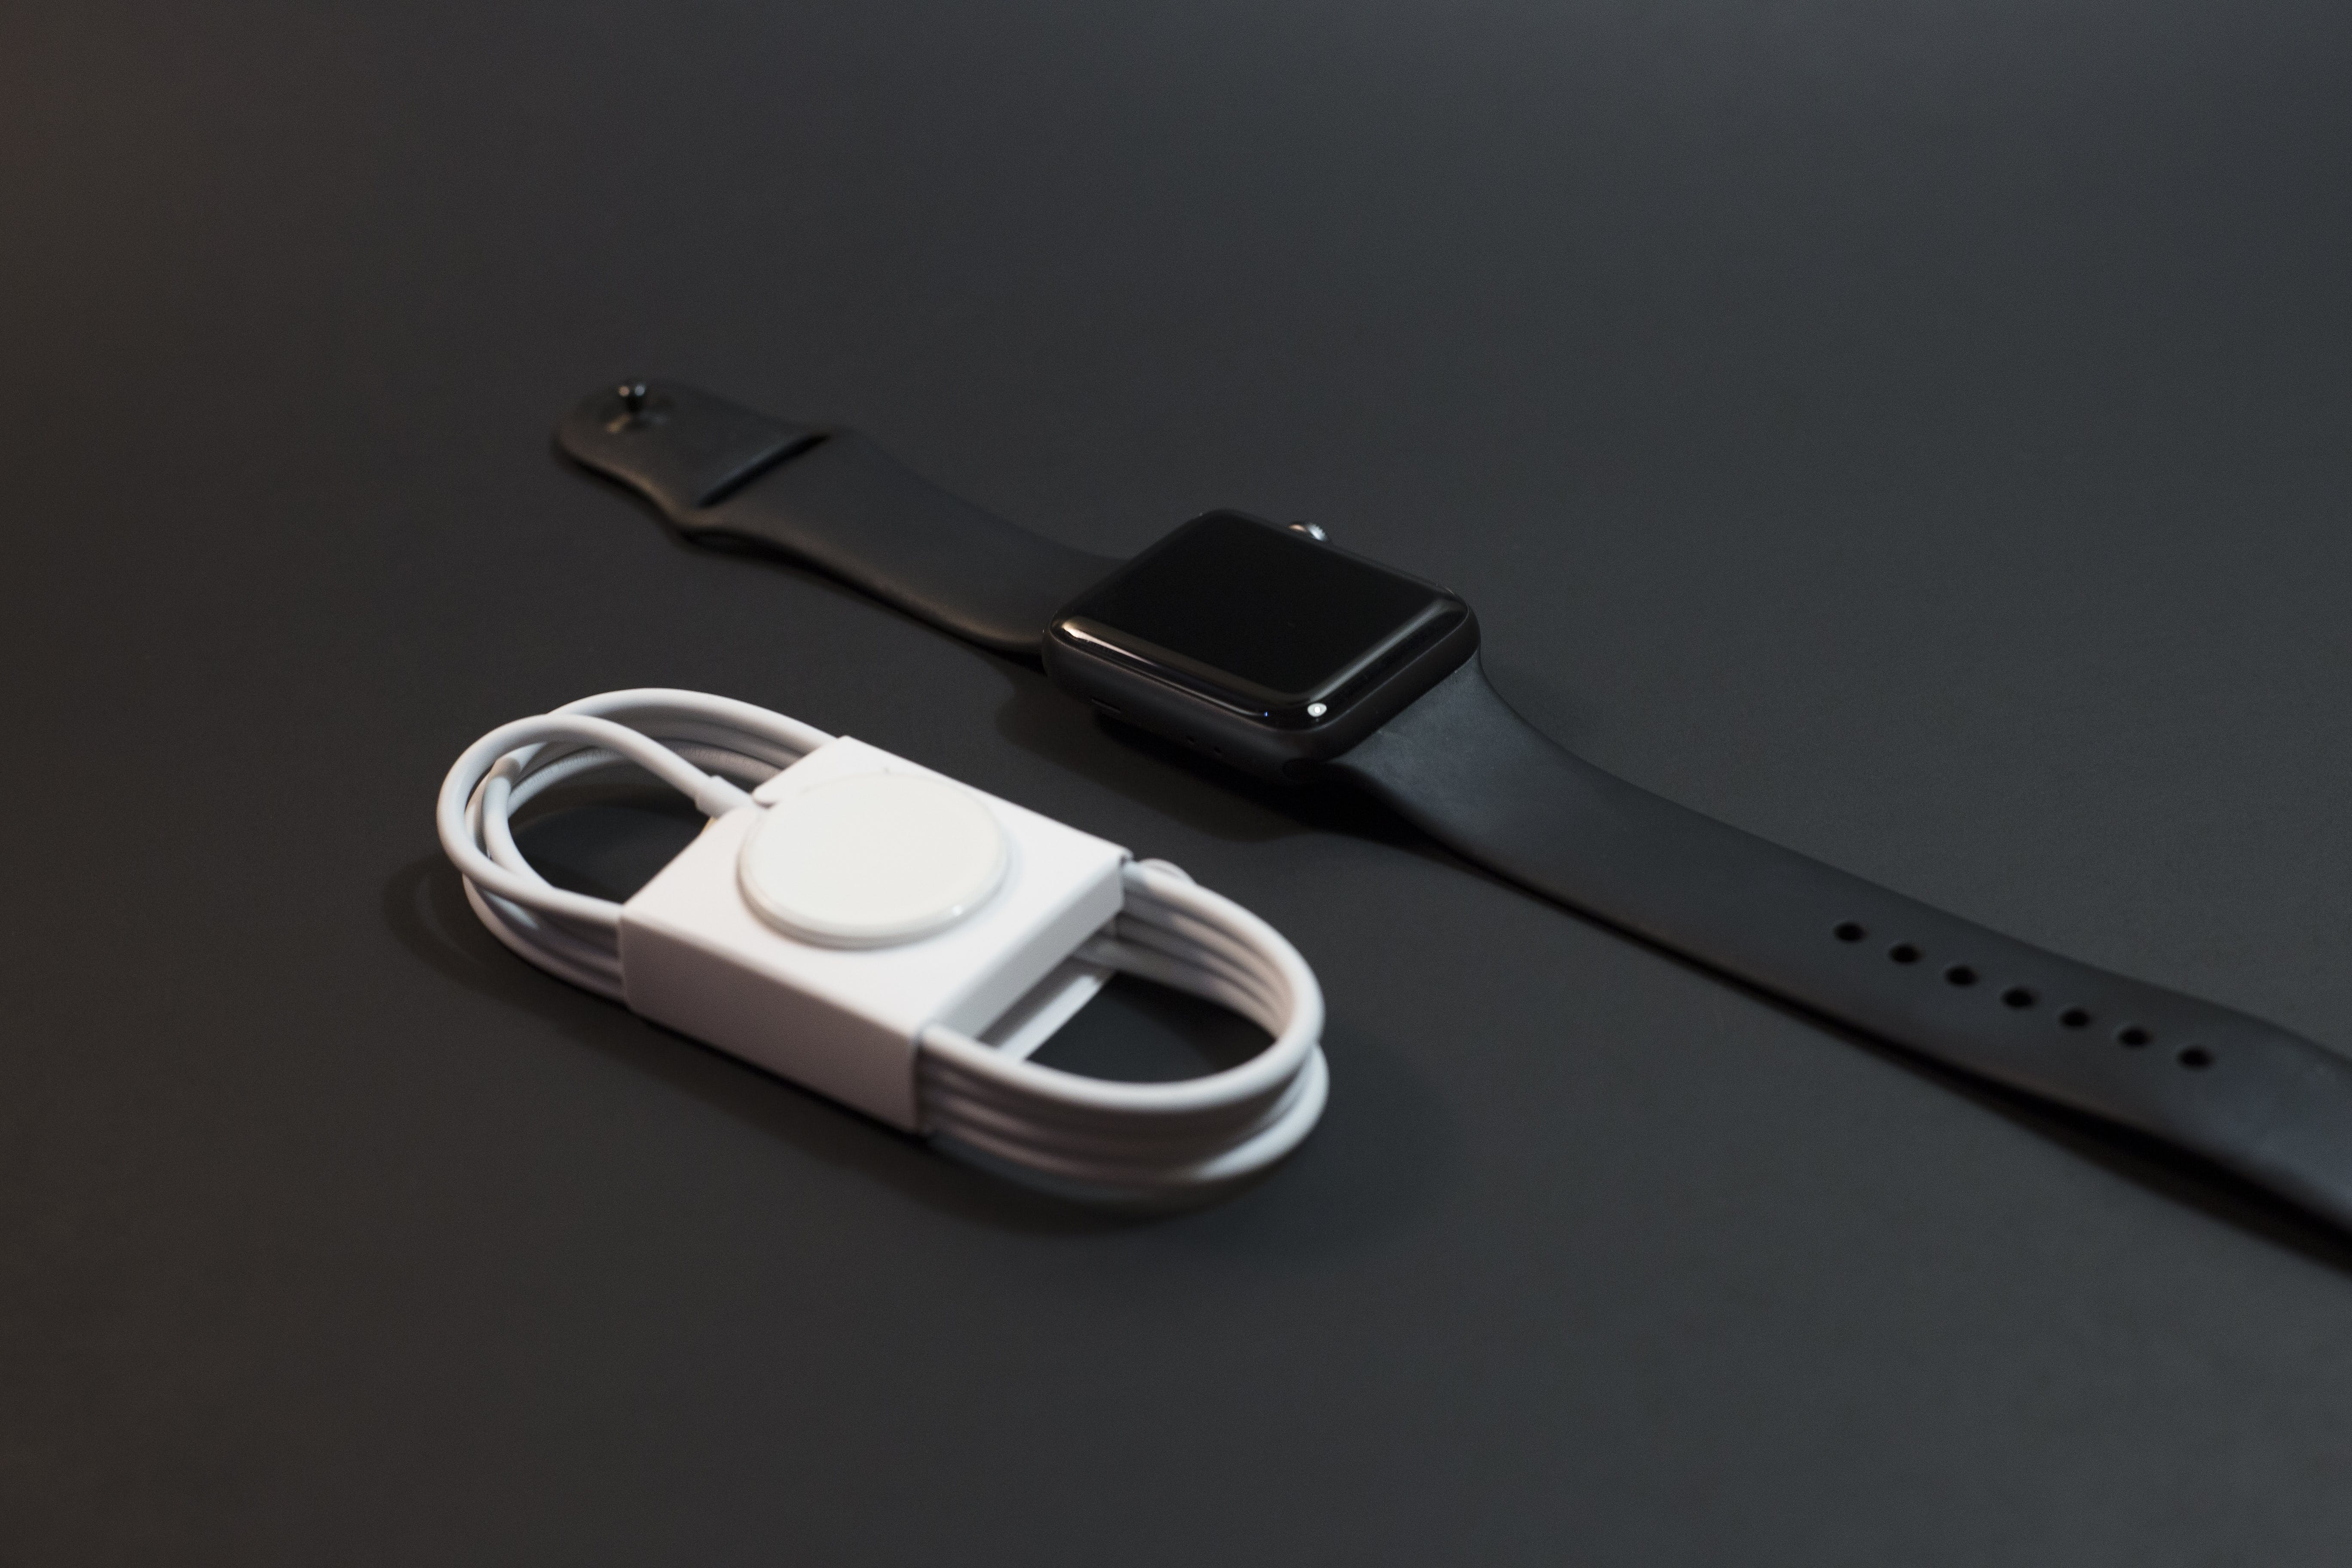 Black Aluminum Case Apple Watch With Sport Band Beside Magnetic Charger